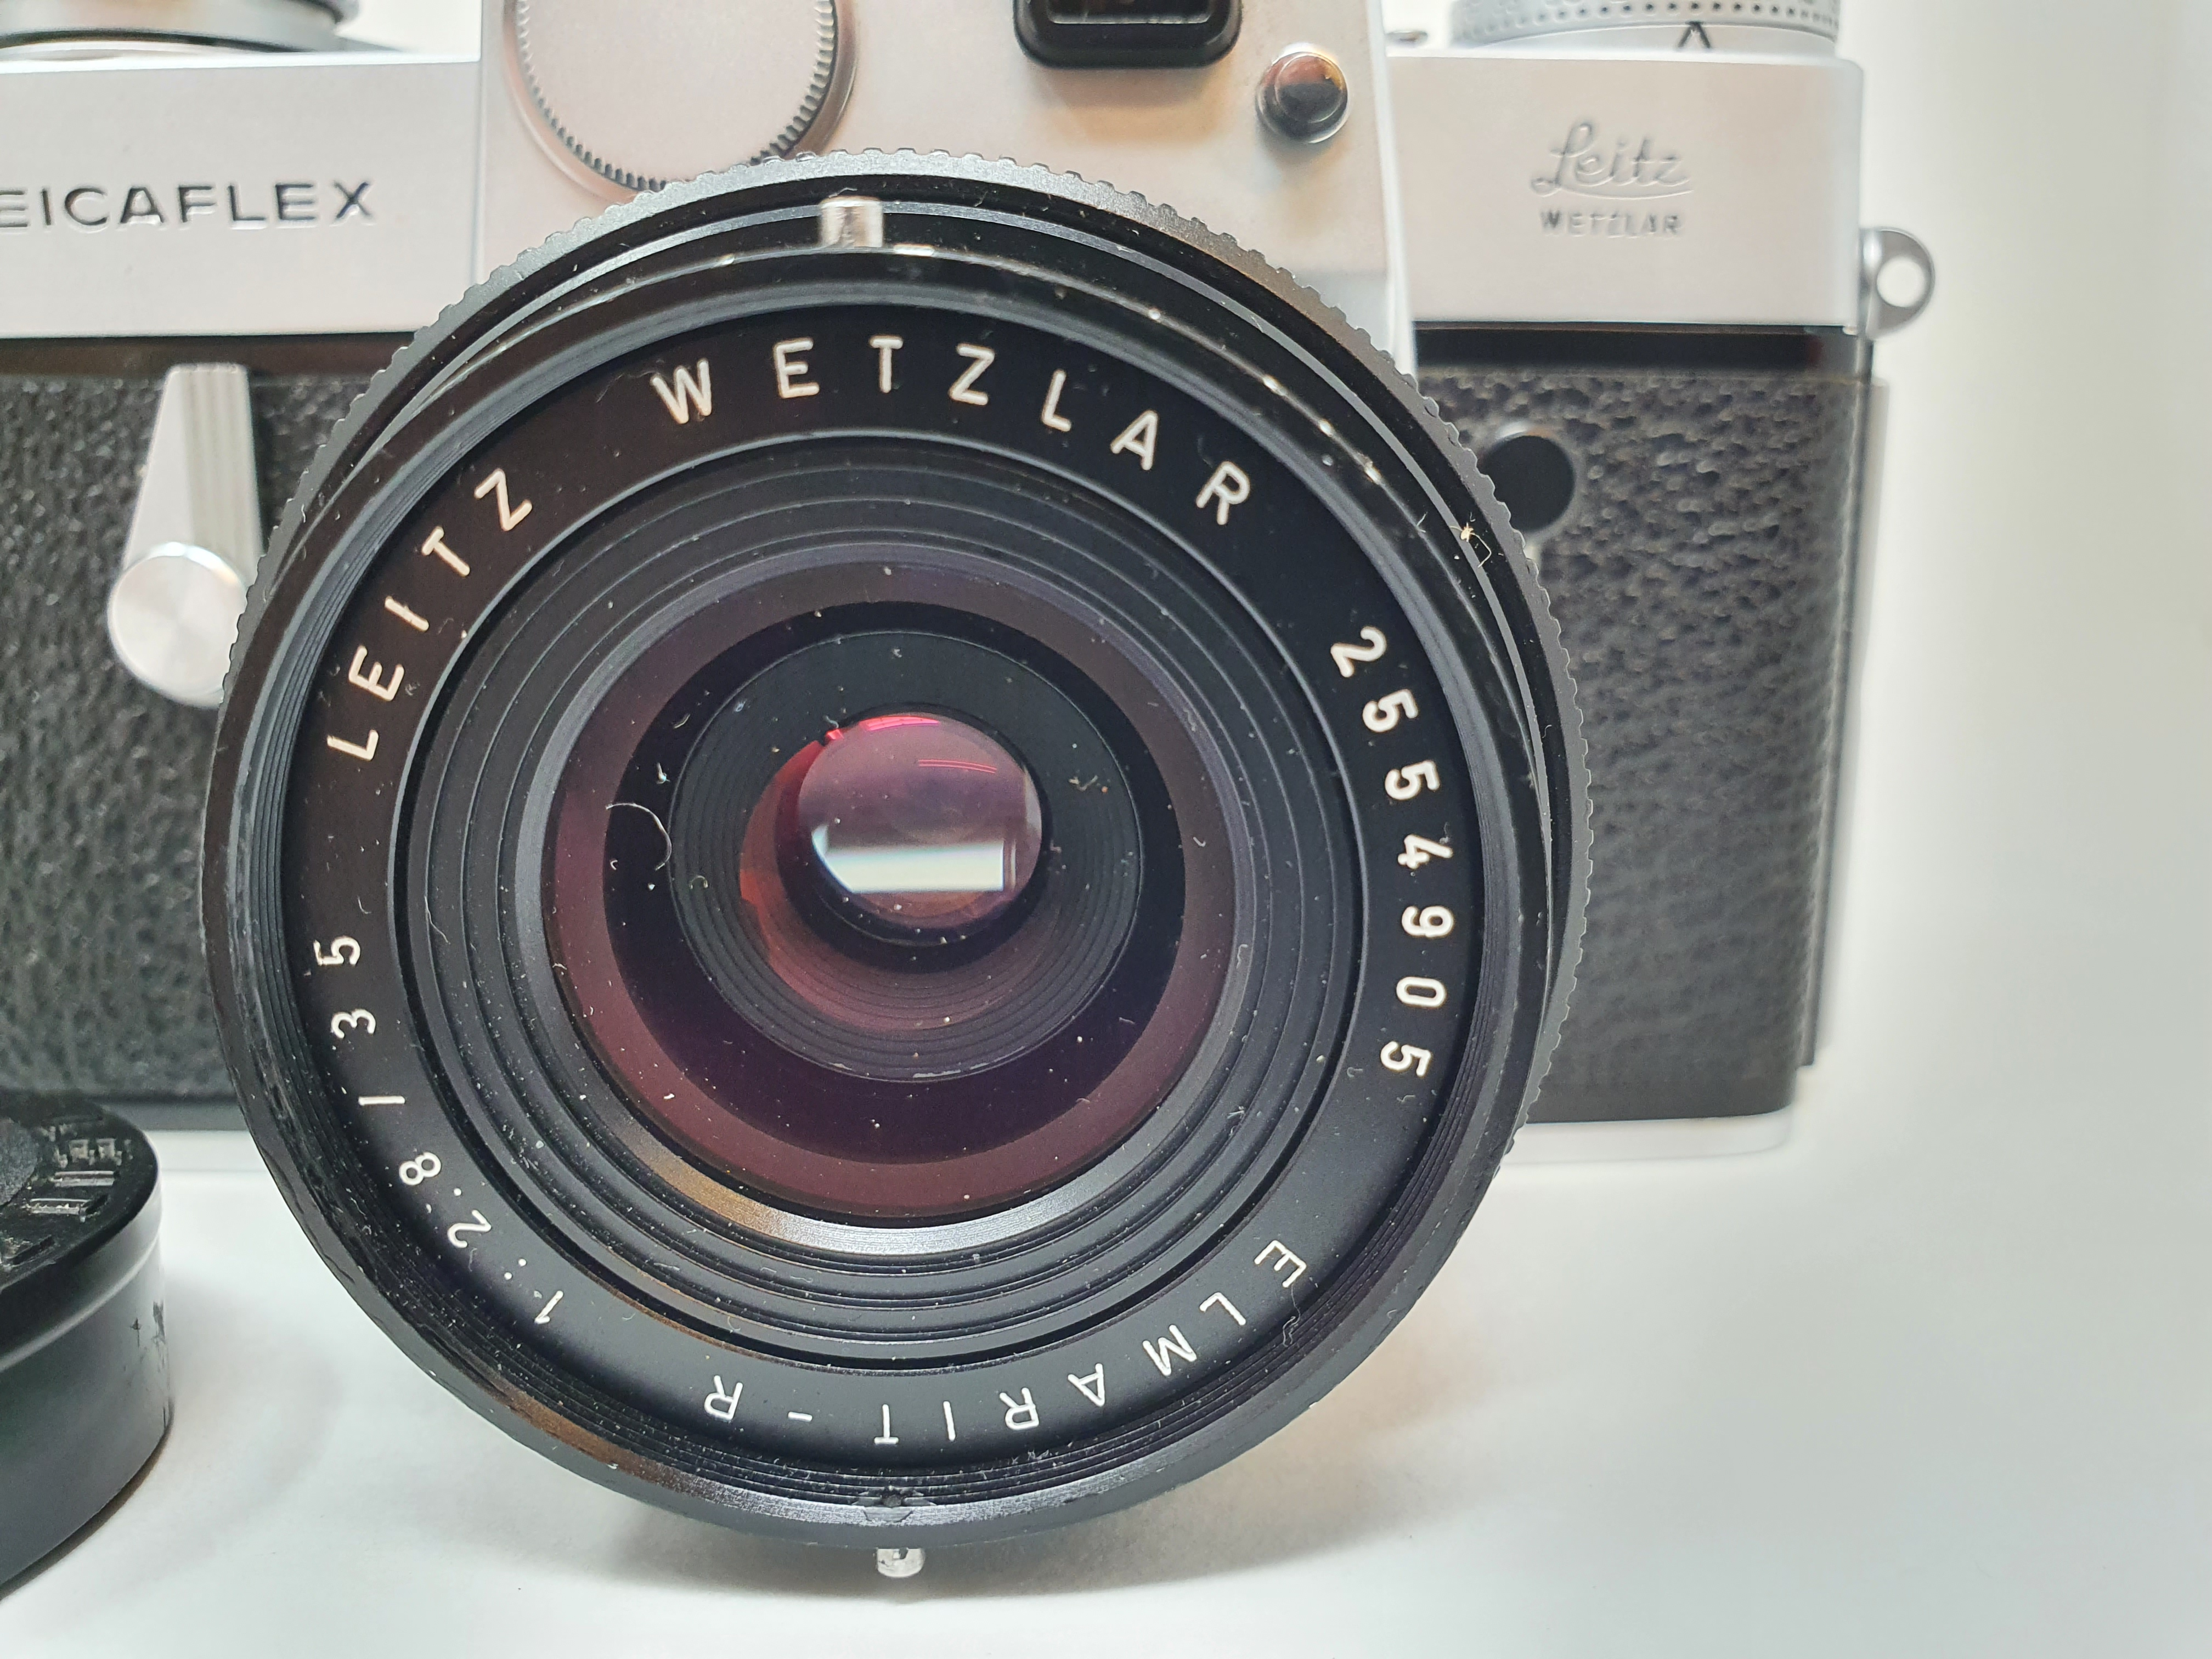 A Leica Leicaflex camera, serial number 1115659, with leather outer case Provenance: Part of a - Image 2 of 5